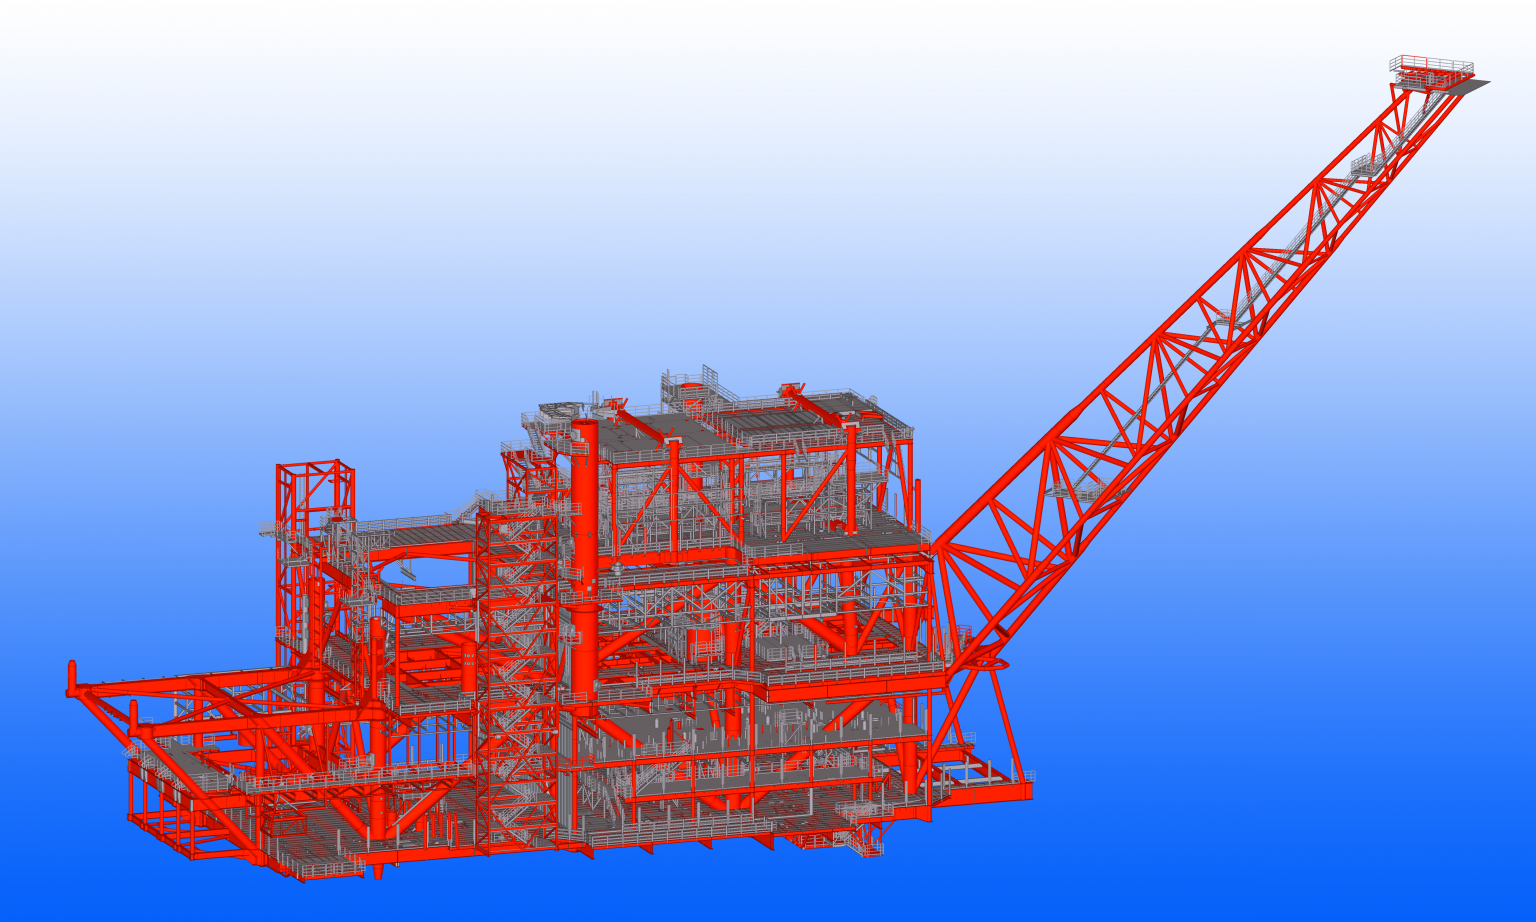 Iv-Consult offers its clients the option of modelling all the welds of the structure into the detailing model